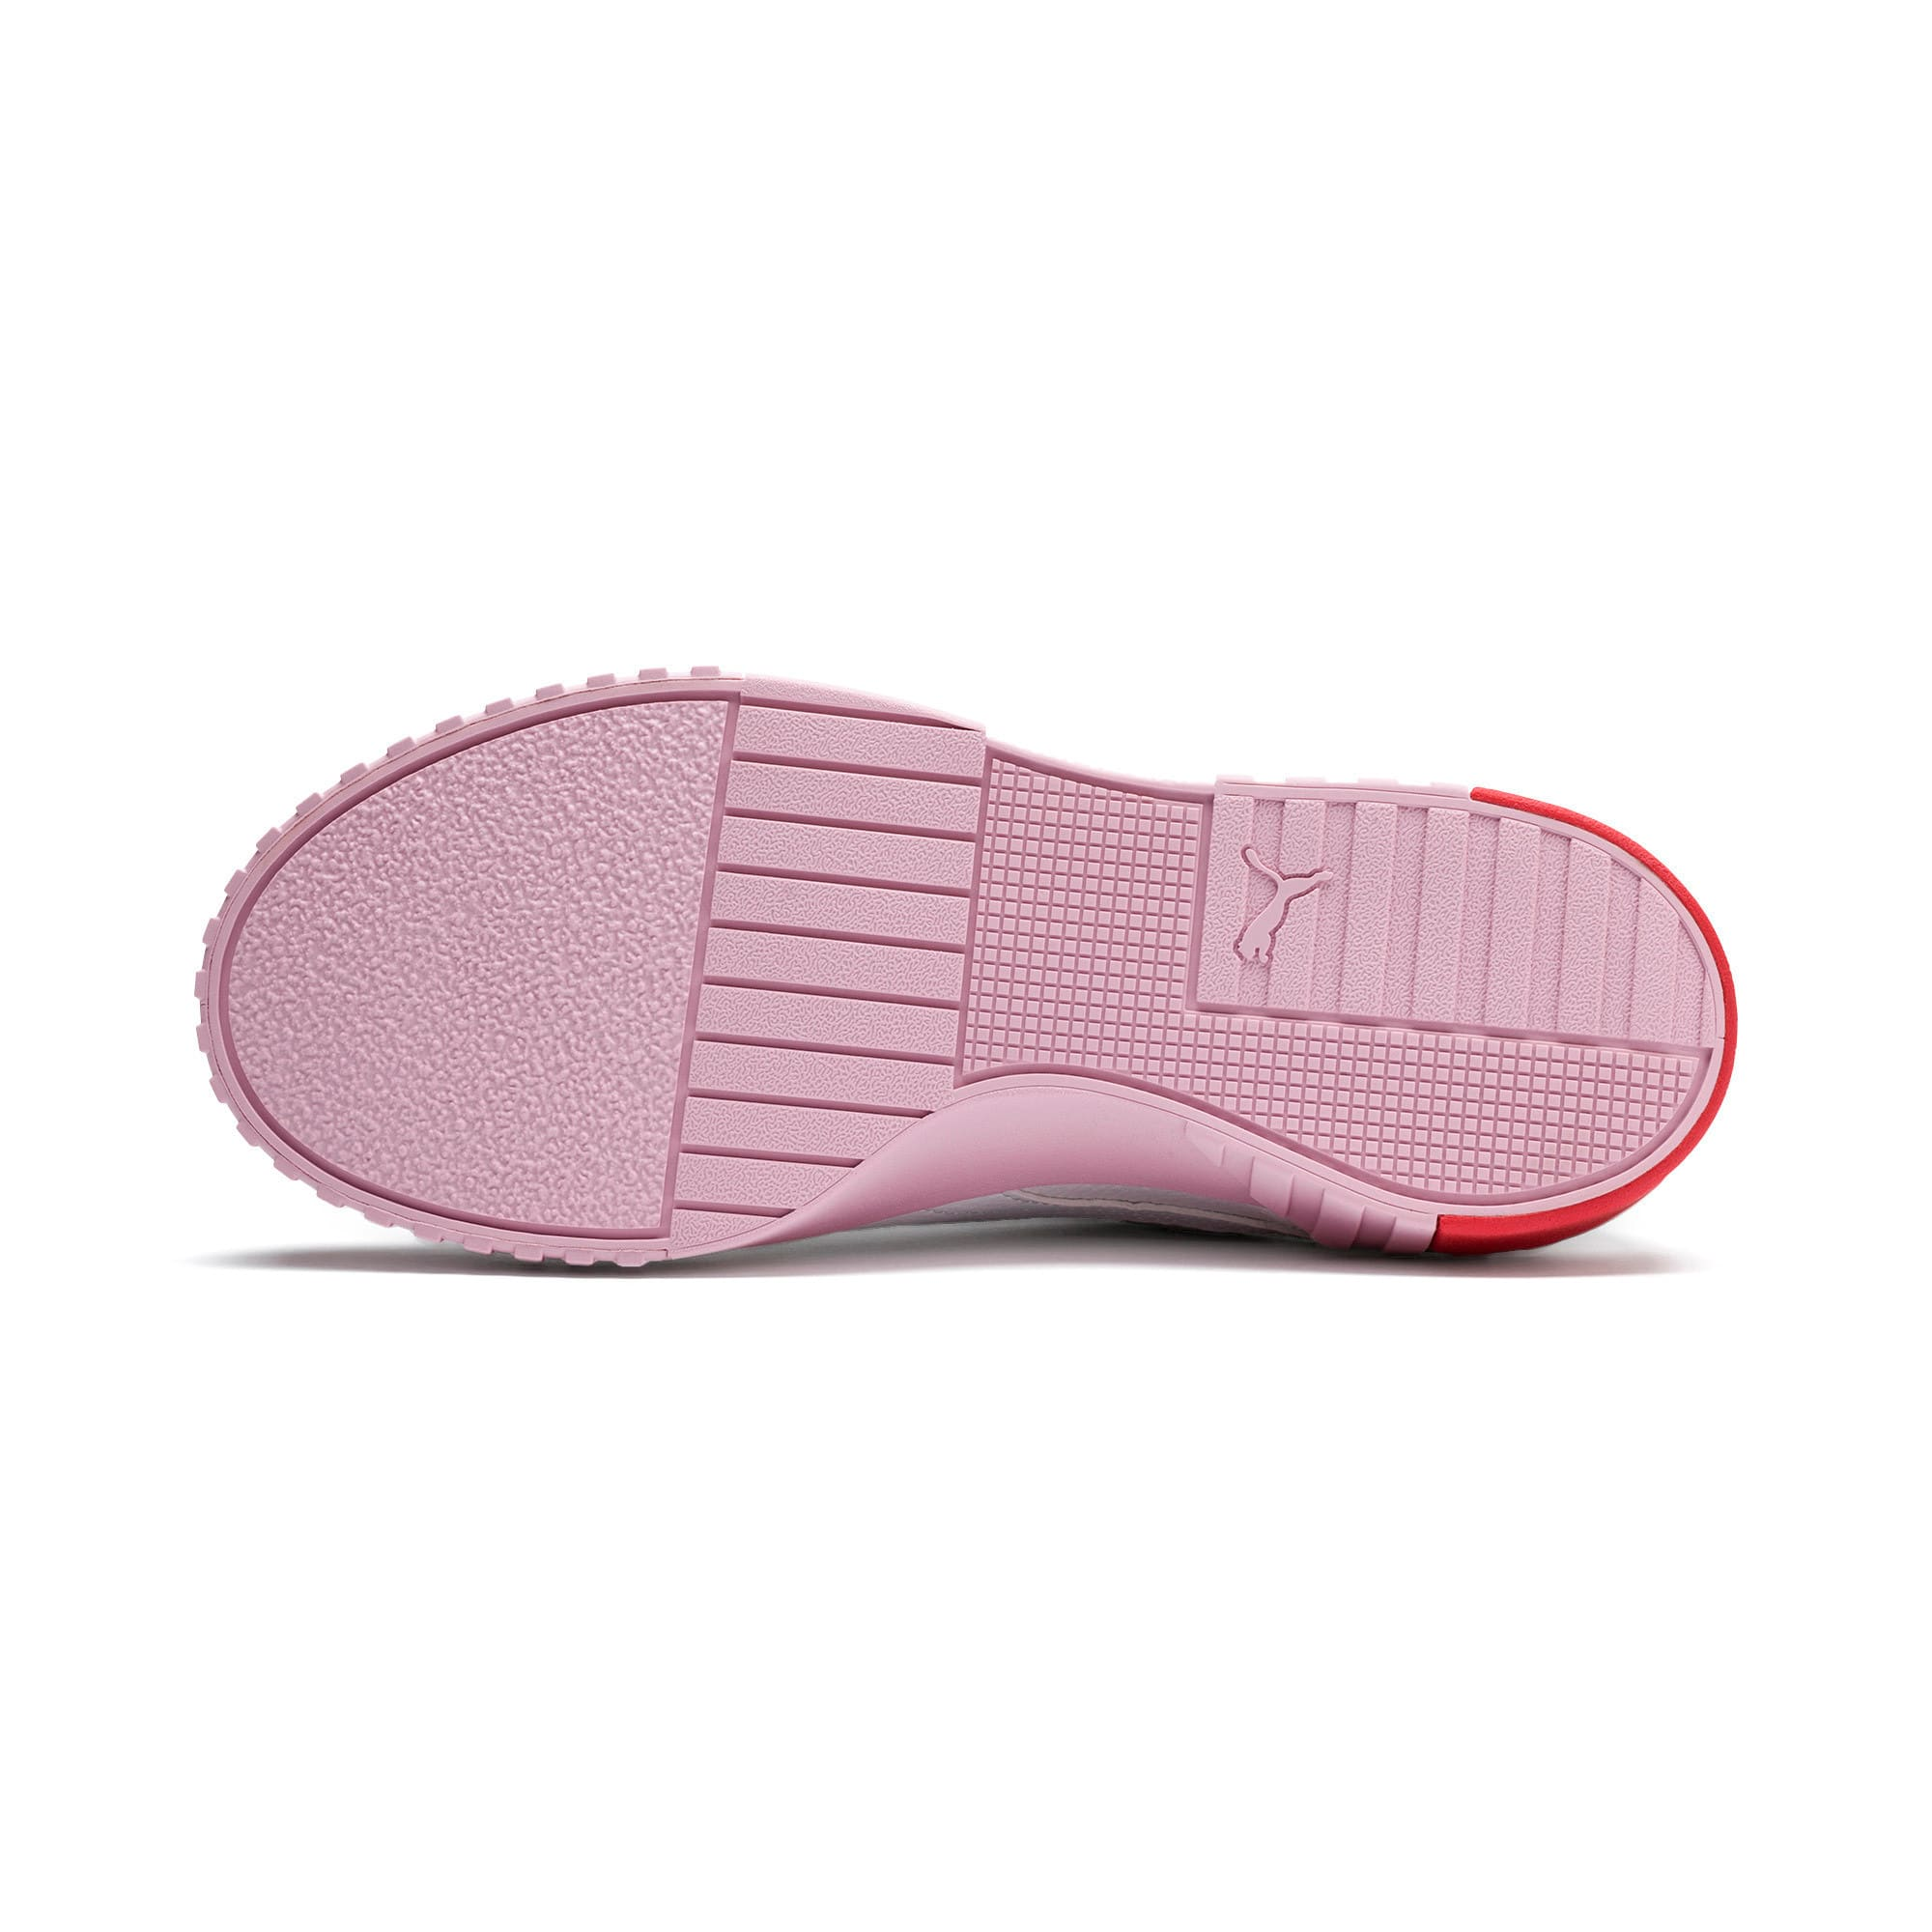 Thumbnail 5 of Cali Women's Trainers, Puma White-Pale Pink, medium